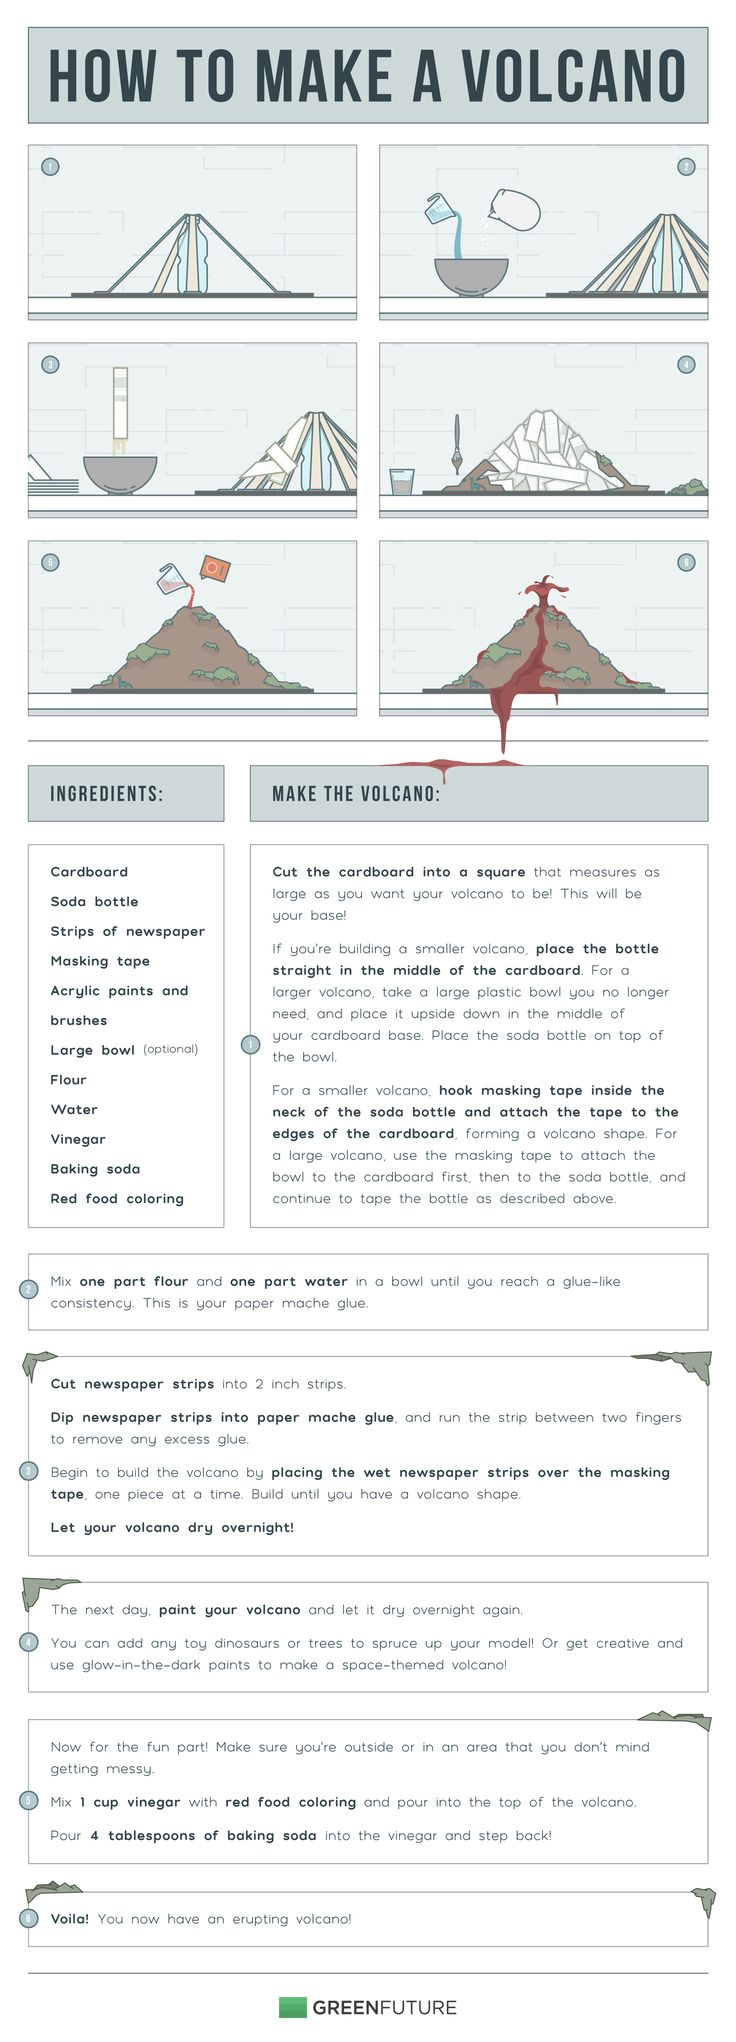 volcanoes essays Read this essay on volcanoes come browse our large digital warehouse of free sample essays get the knowledge you need in order to pass your classes and more only at termpaperwarehousecom.